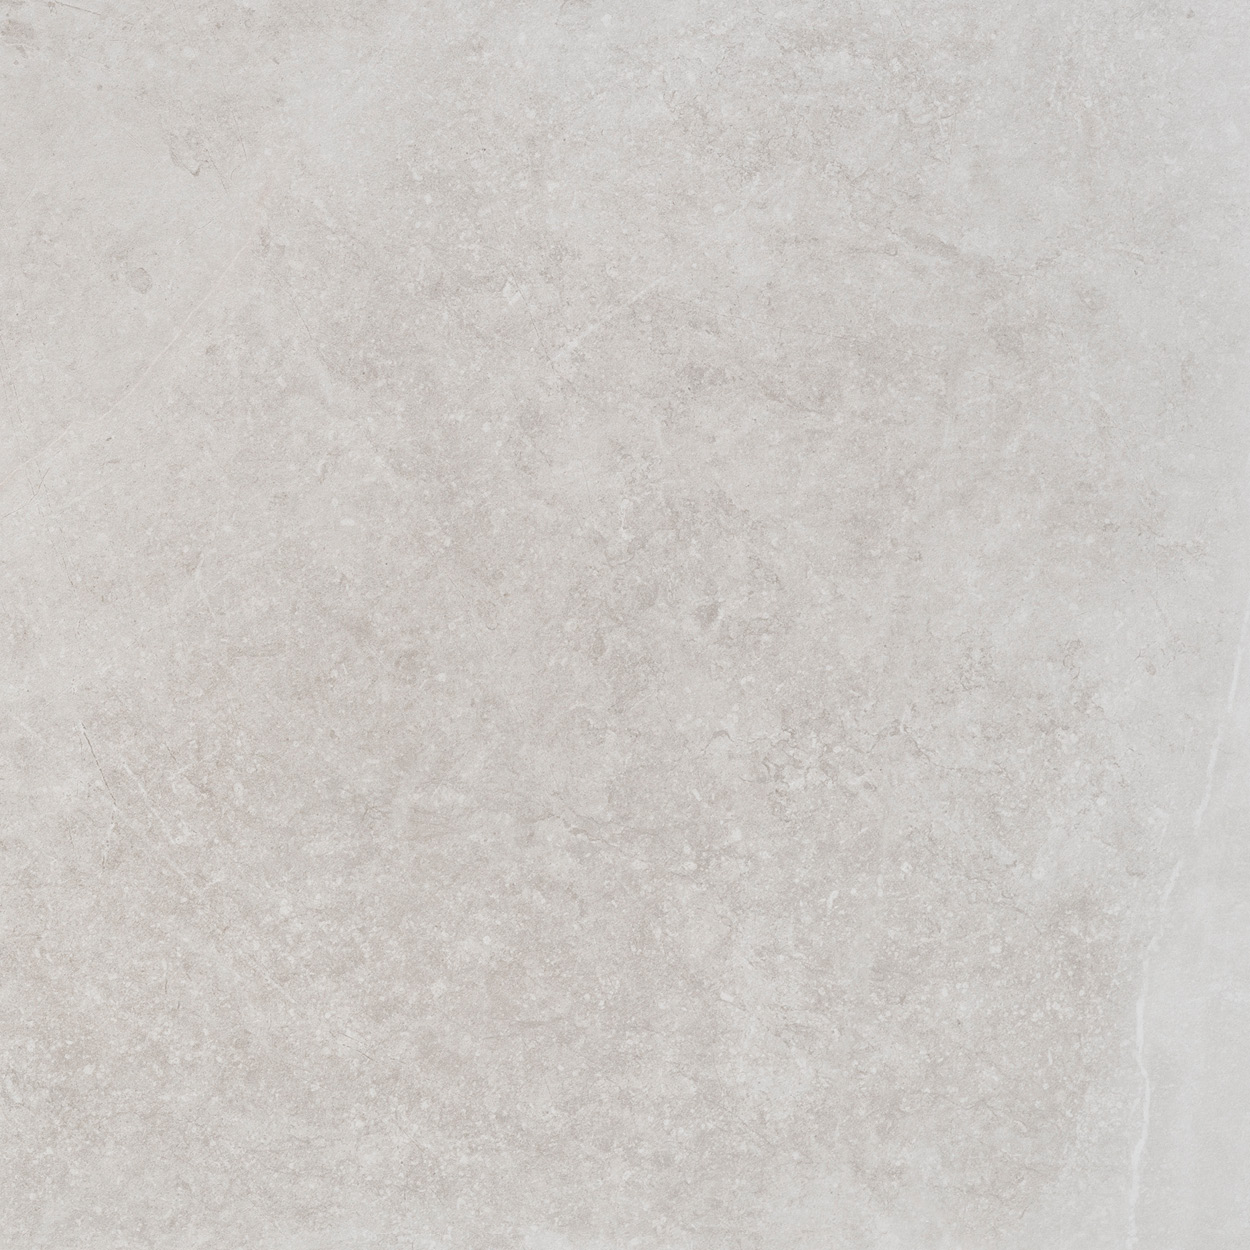 16 X 32 Evo Stone Ivory Honed finished Rectified Porcelain Tile (SPECIAL ORDER ONLY)